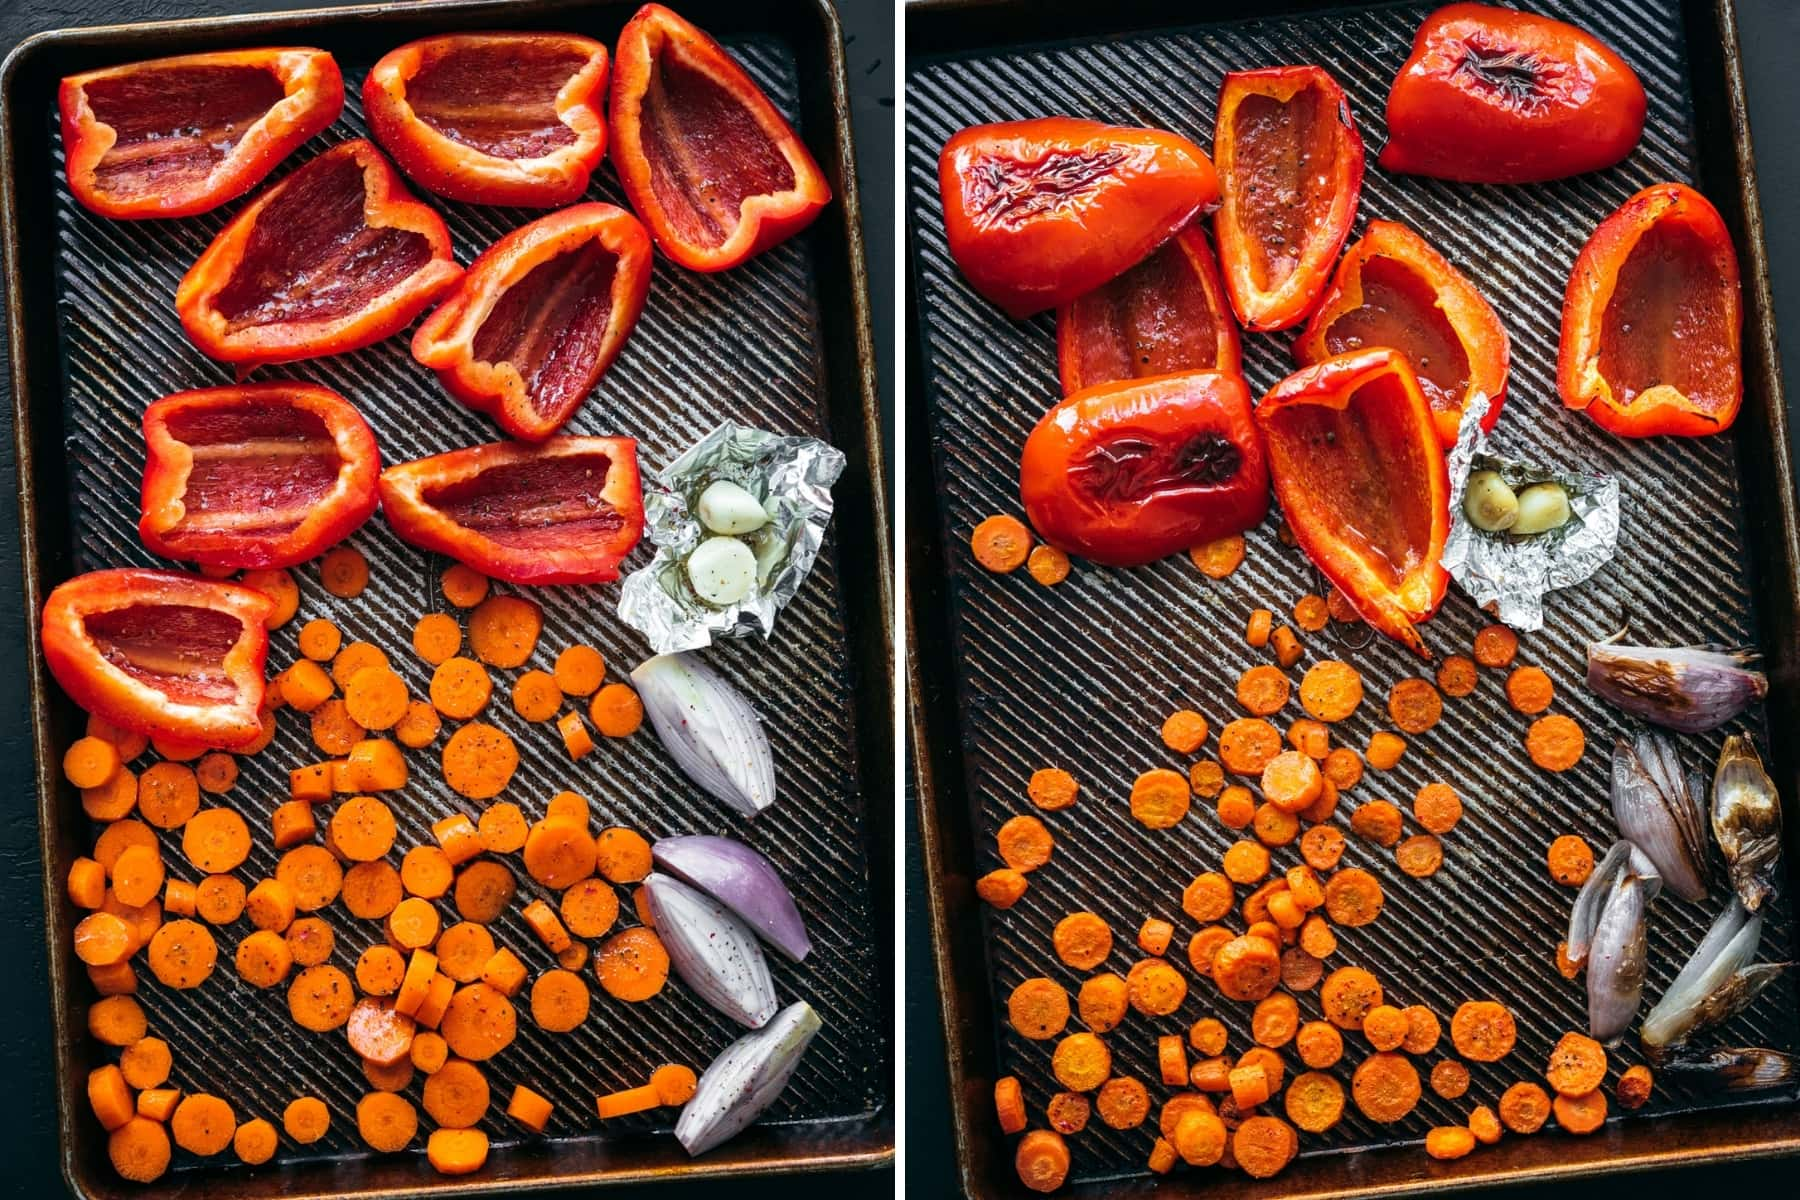 before and after roasting red peppers, carrots, shallot and garlic on sheet pan.